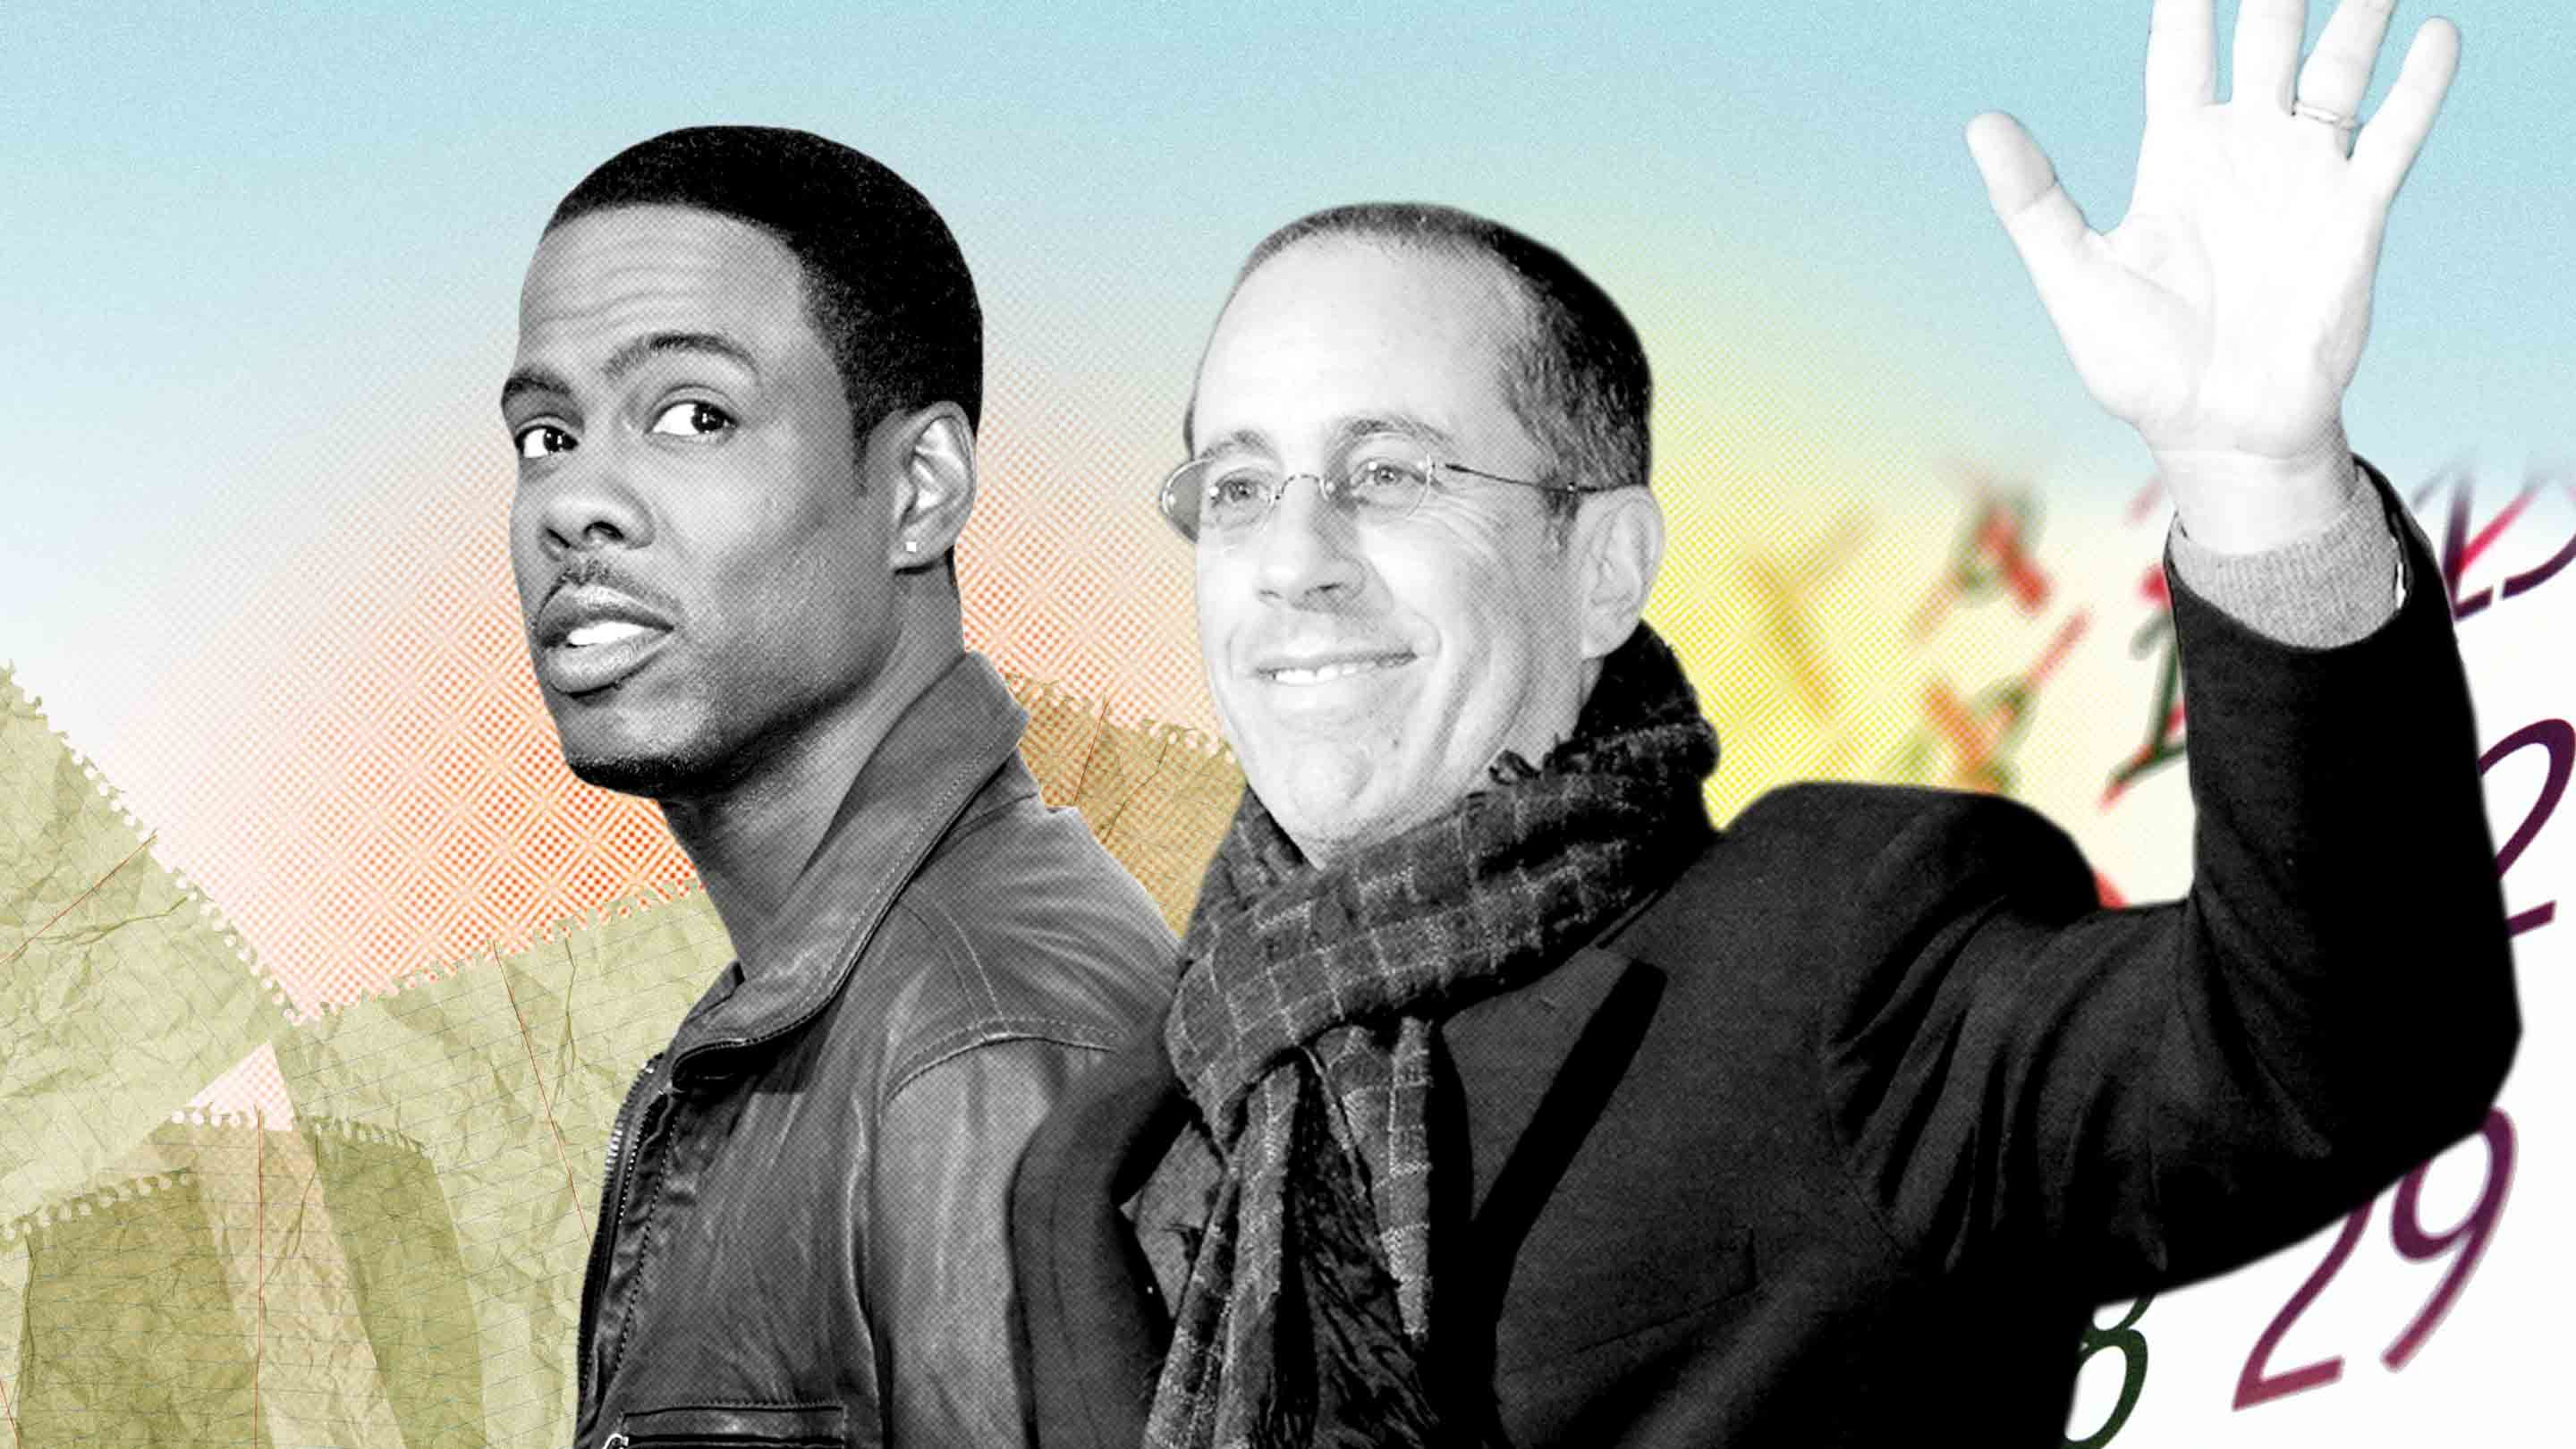 The Grind and the Streak: Chris Rock and Jerry Seinfeld